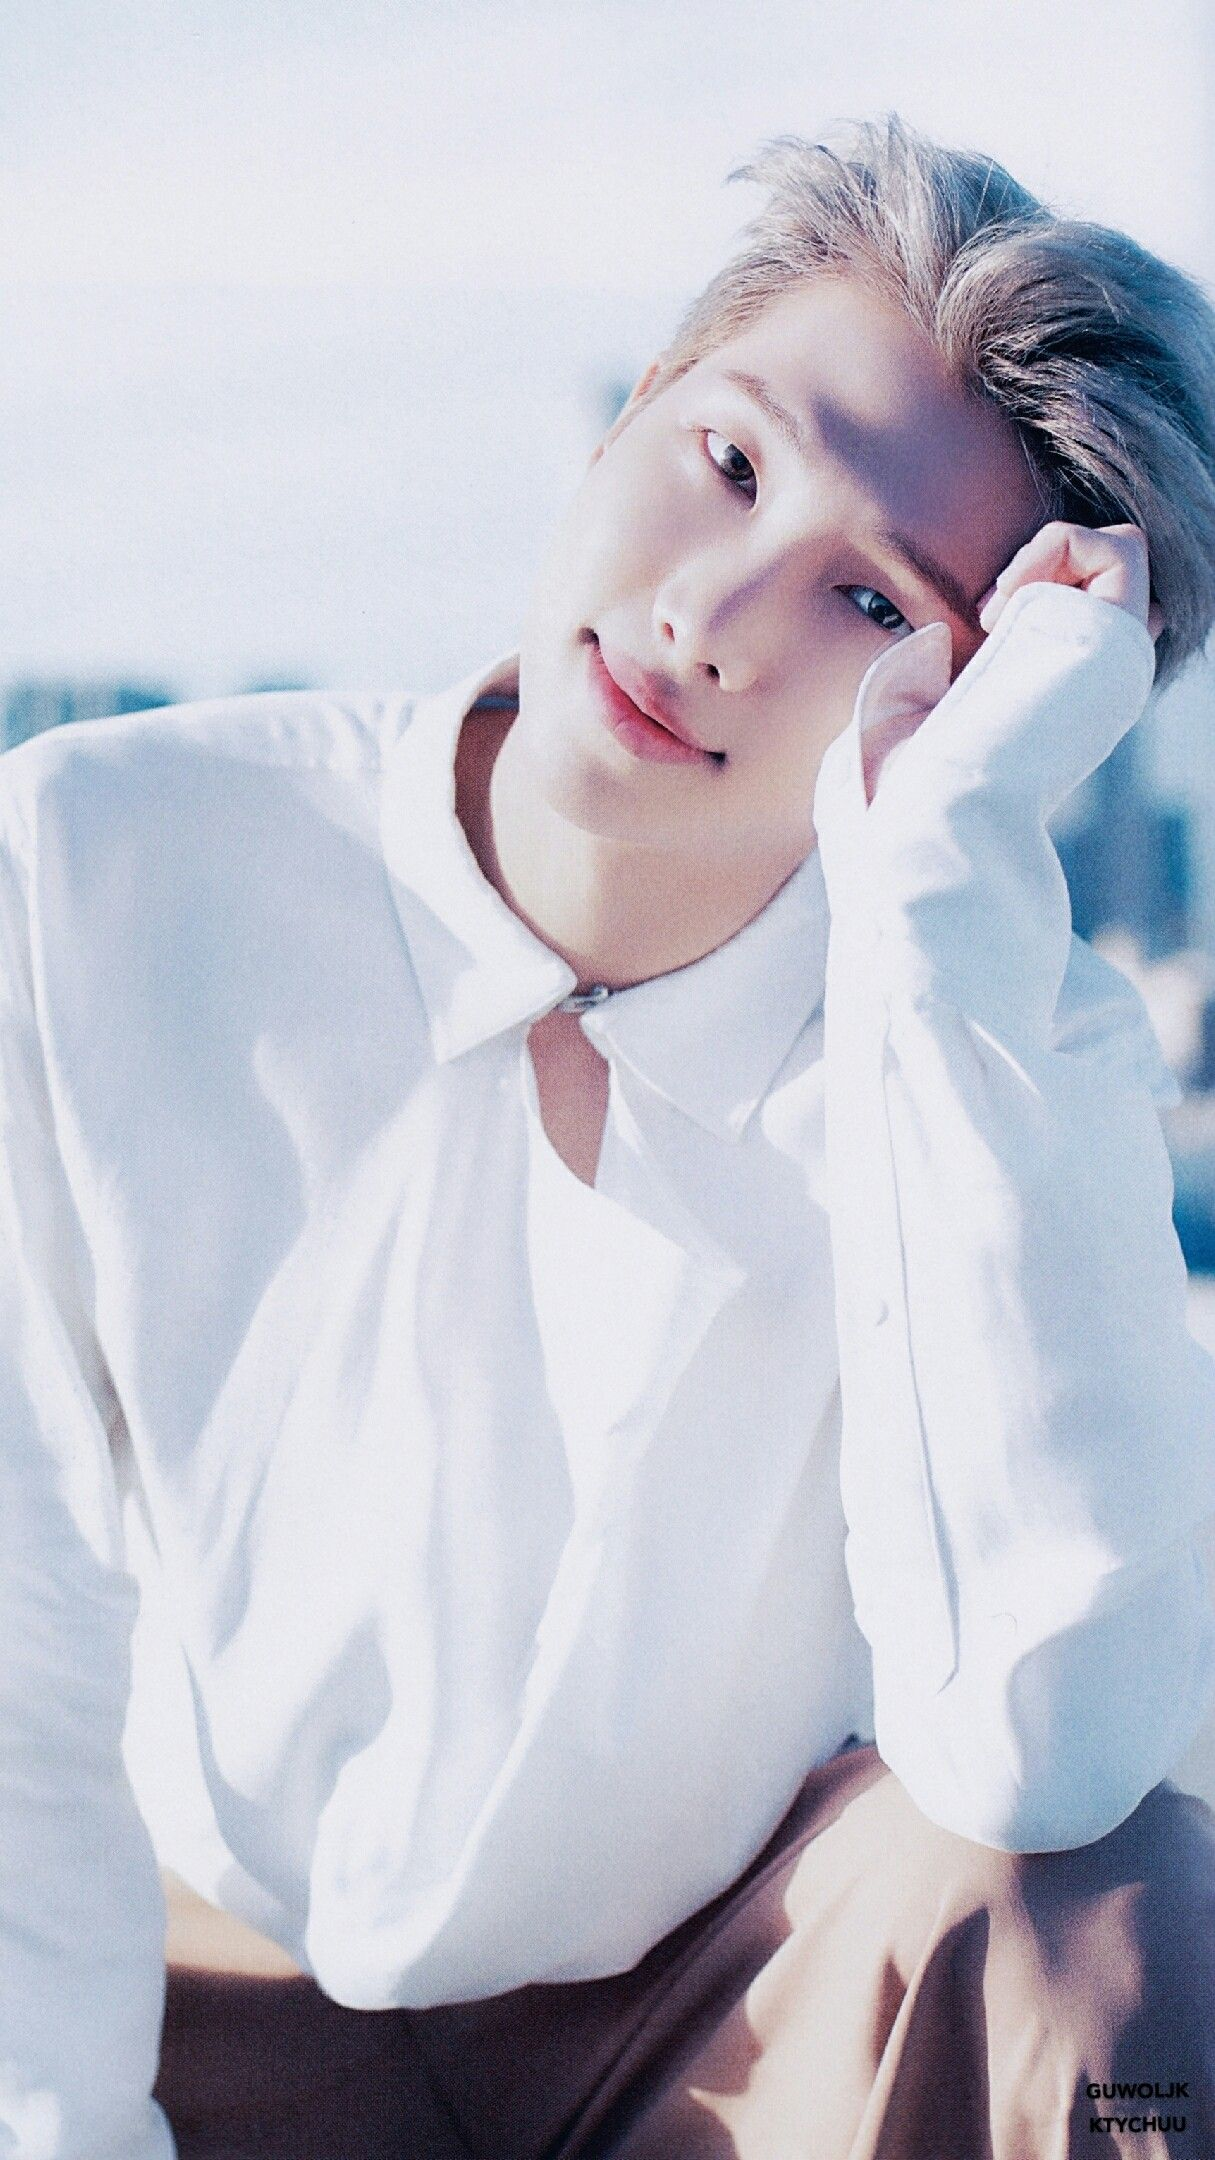 BTS EDITS | BTS WALLPAPERS | BTS x DICON | pls make sure to follow me before u save it ♡ find more on my account ♡ Pls don't Repost! ❤ don't crop the logo ❤ Scan cr. guwoljk #BTS #RM #btswallpaper